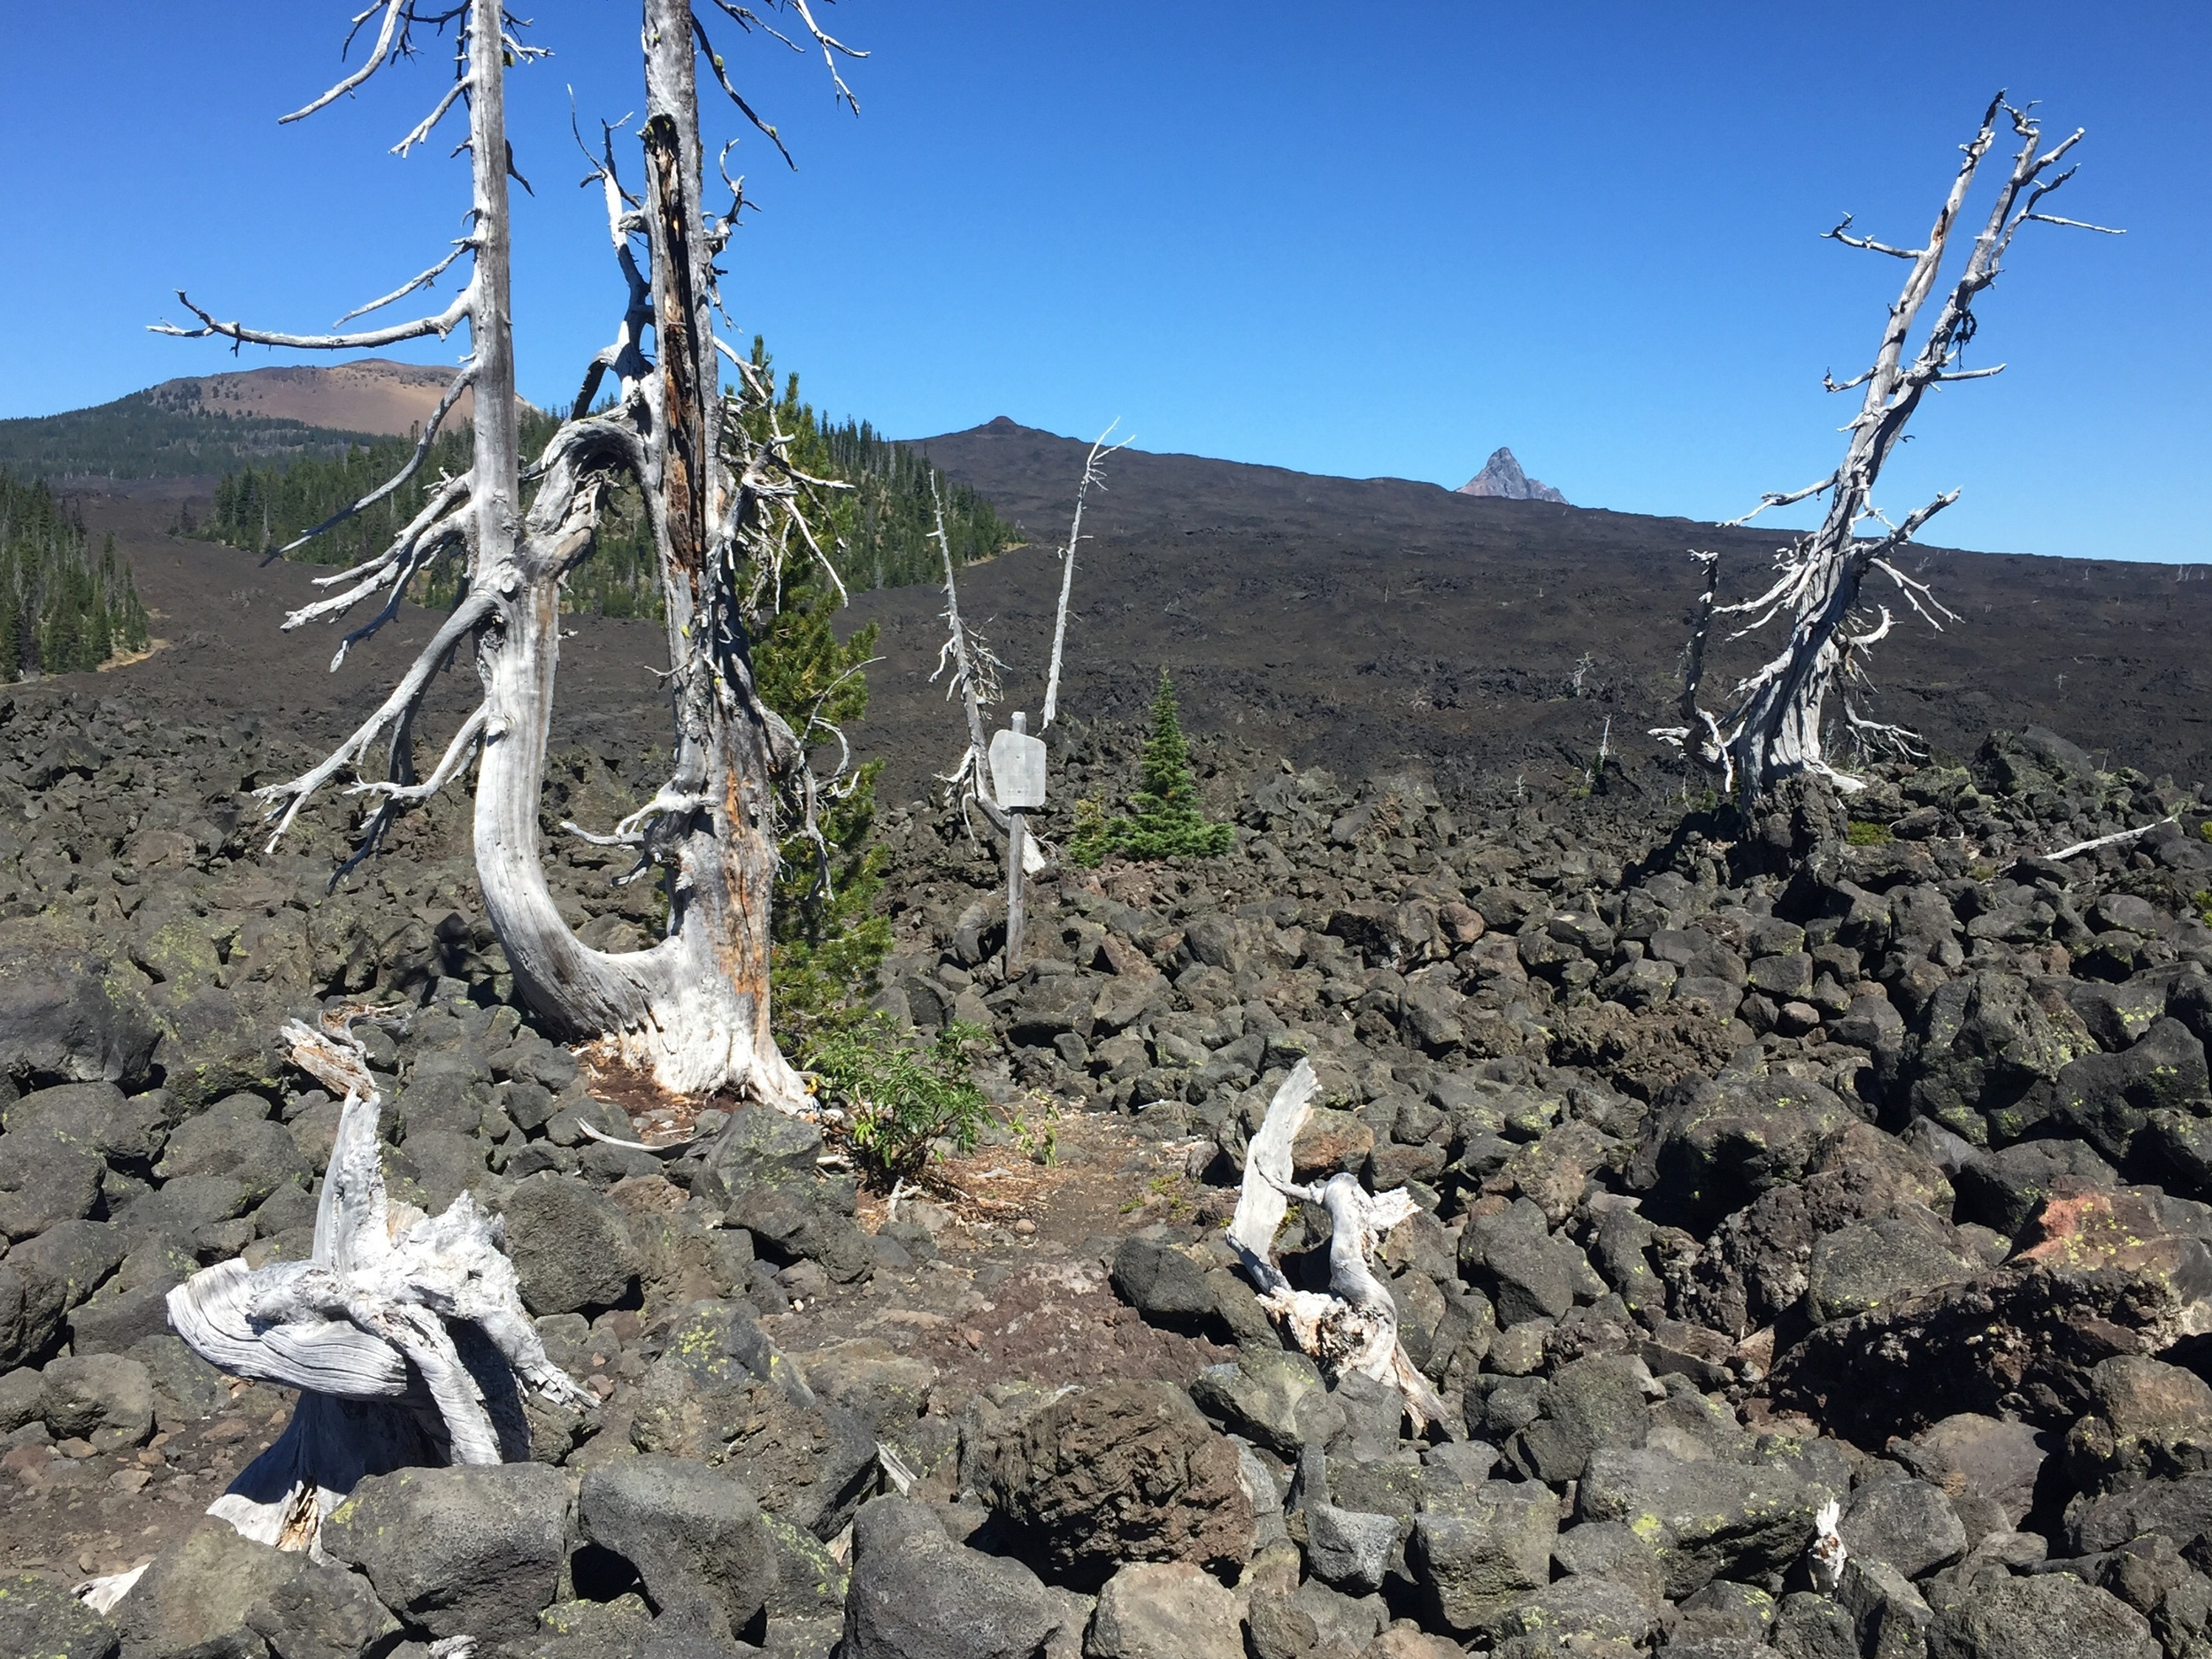 A peek back at Belknap Crater (L) & Mt Washington (R) from the wilderness boundary near Hwy 242 at Mackenzie Pass